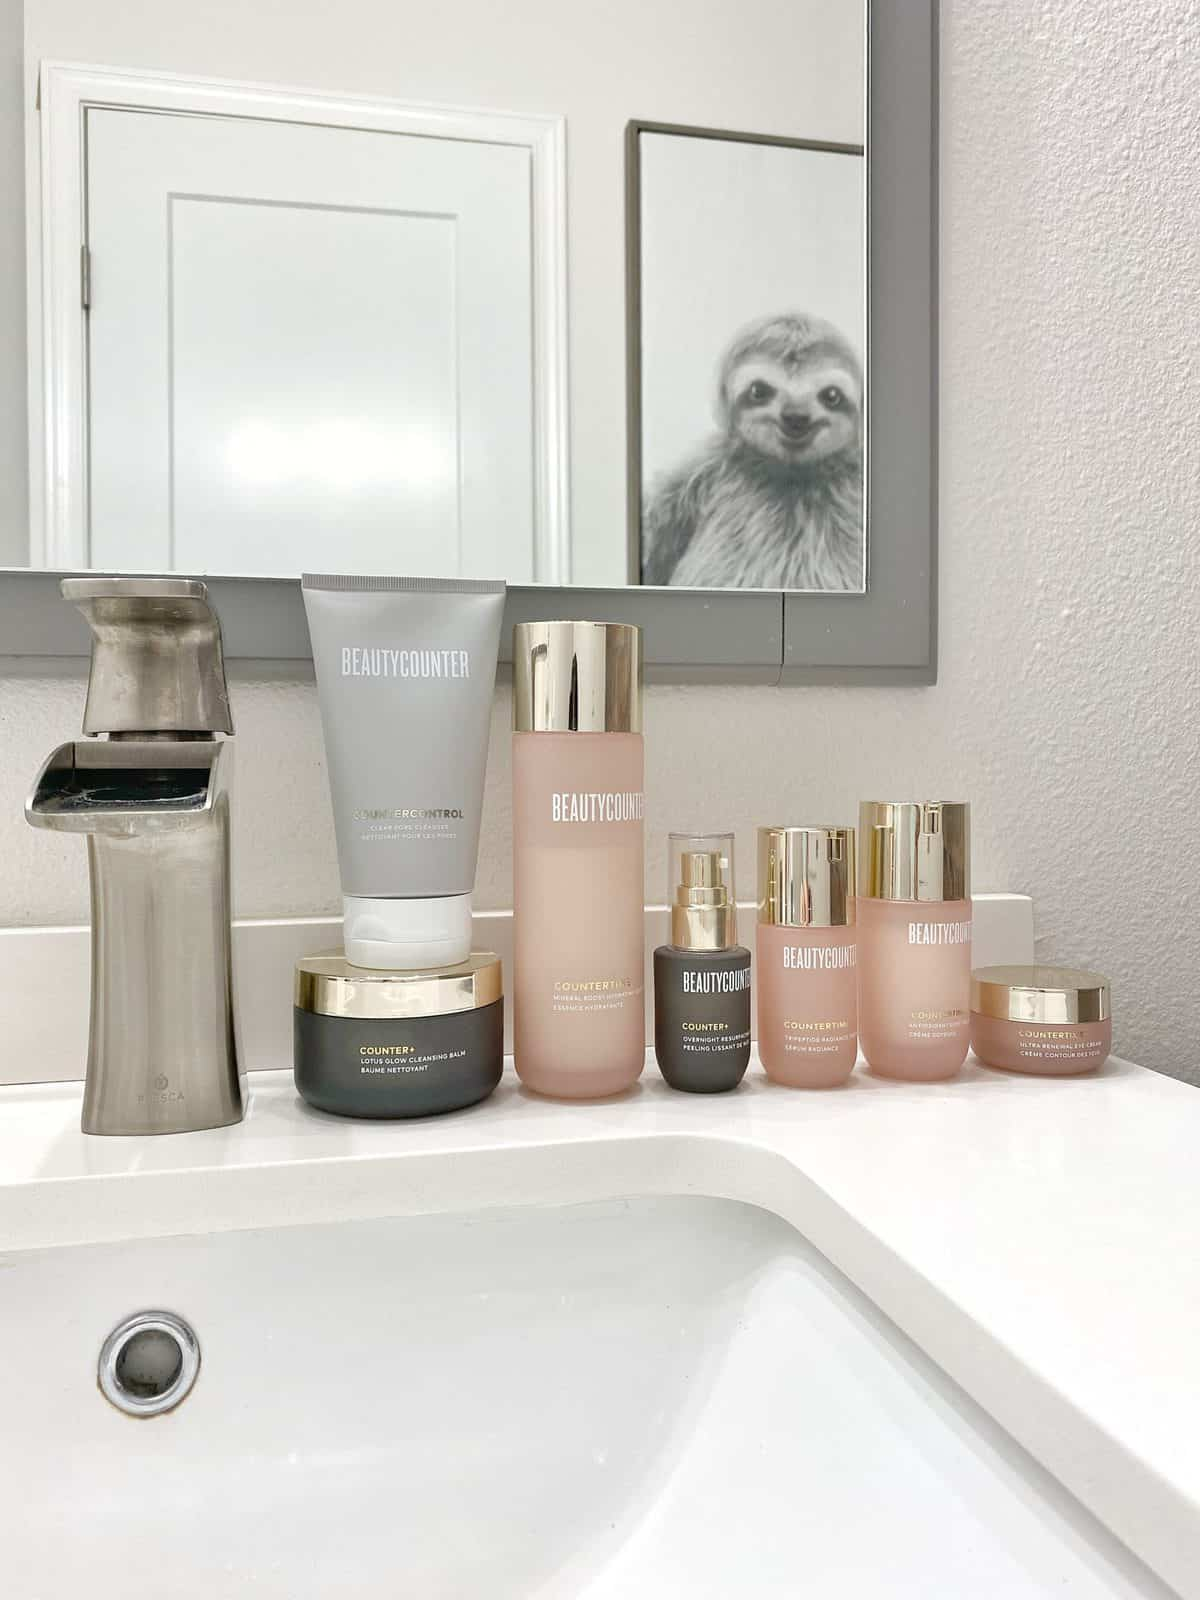 My skincare lineup sits on a white bathroom vanity, including the Countercountrol Exfoliating Mask, the Counter+ Lotus Glow Cleansing Balm, the Countertime collection, and the Counter+ Overnight Resurfacing Peel. Above the skincare is a bathroom mirror, which reflects a sloth portrait on the opposing wall.